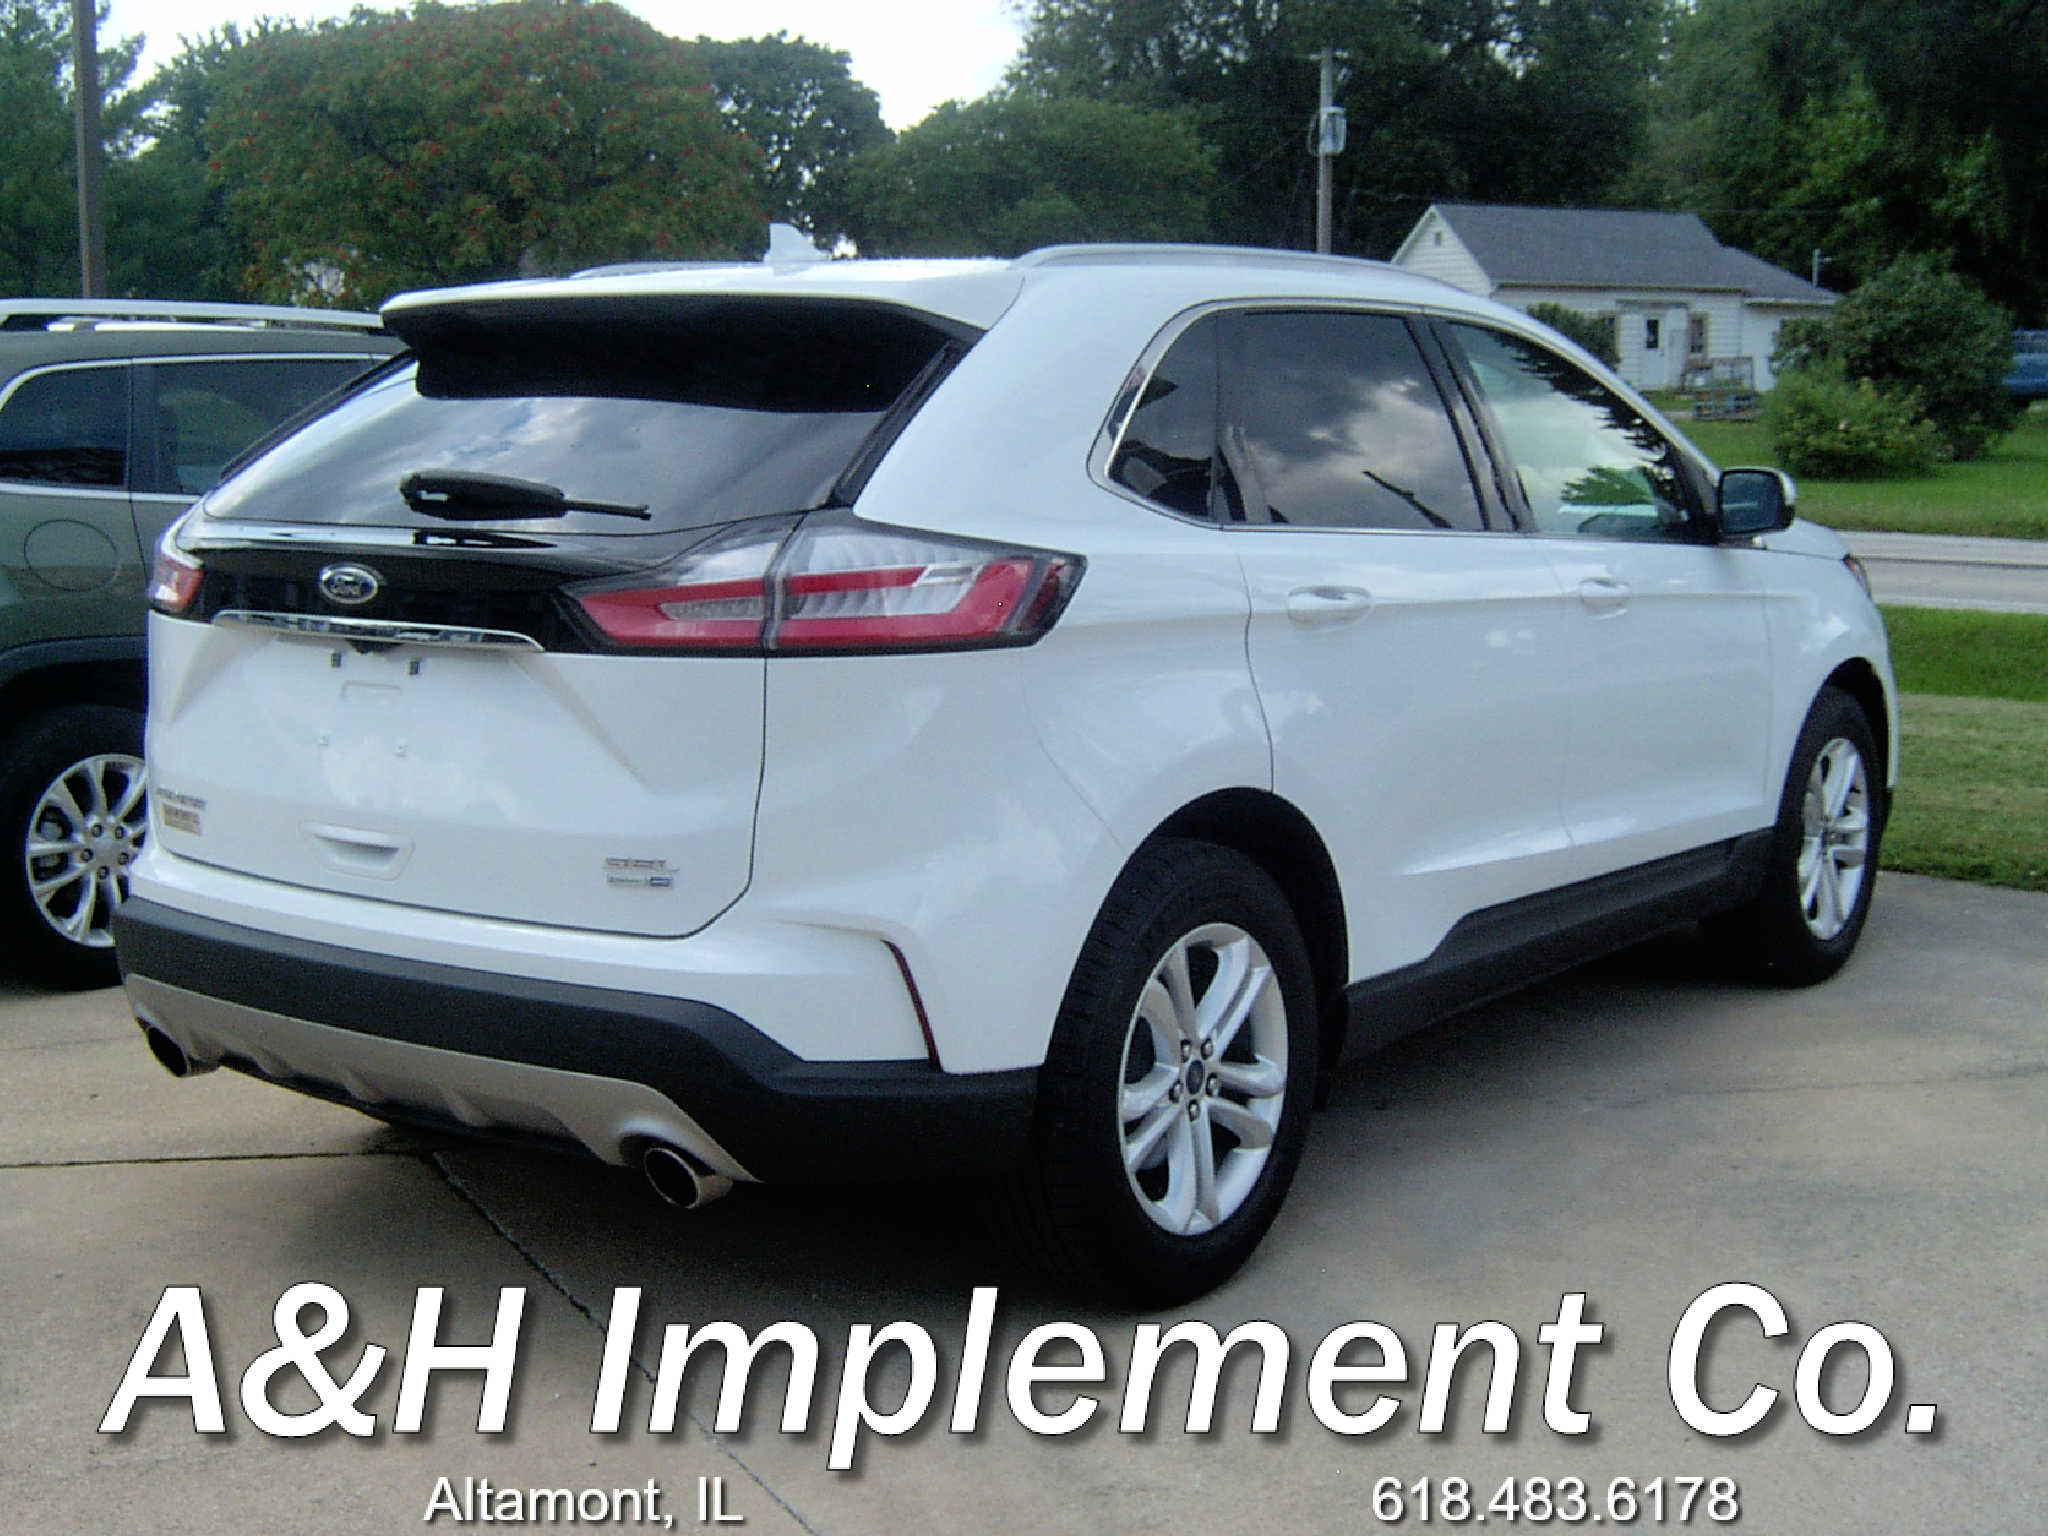 2019 Ford Edge SEL - White 2